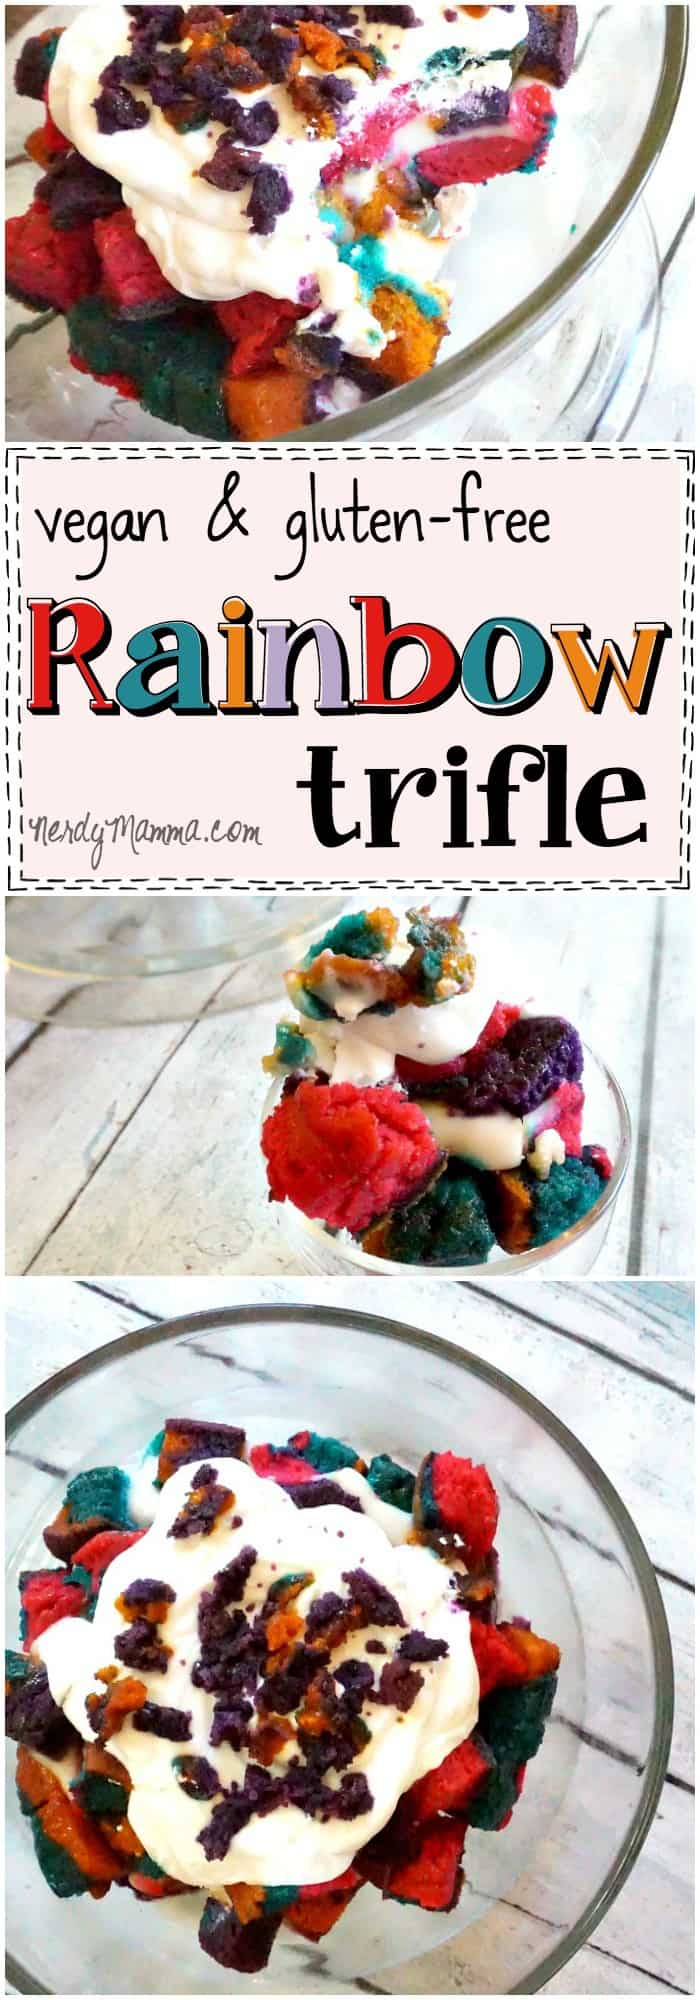 This recipe for vegan and gluten-free rainbow trifle is so cool! I love the colors...and the pudding...it's just everything awesome. Love it.